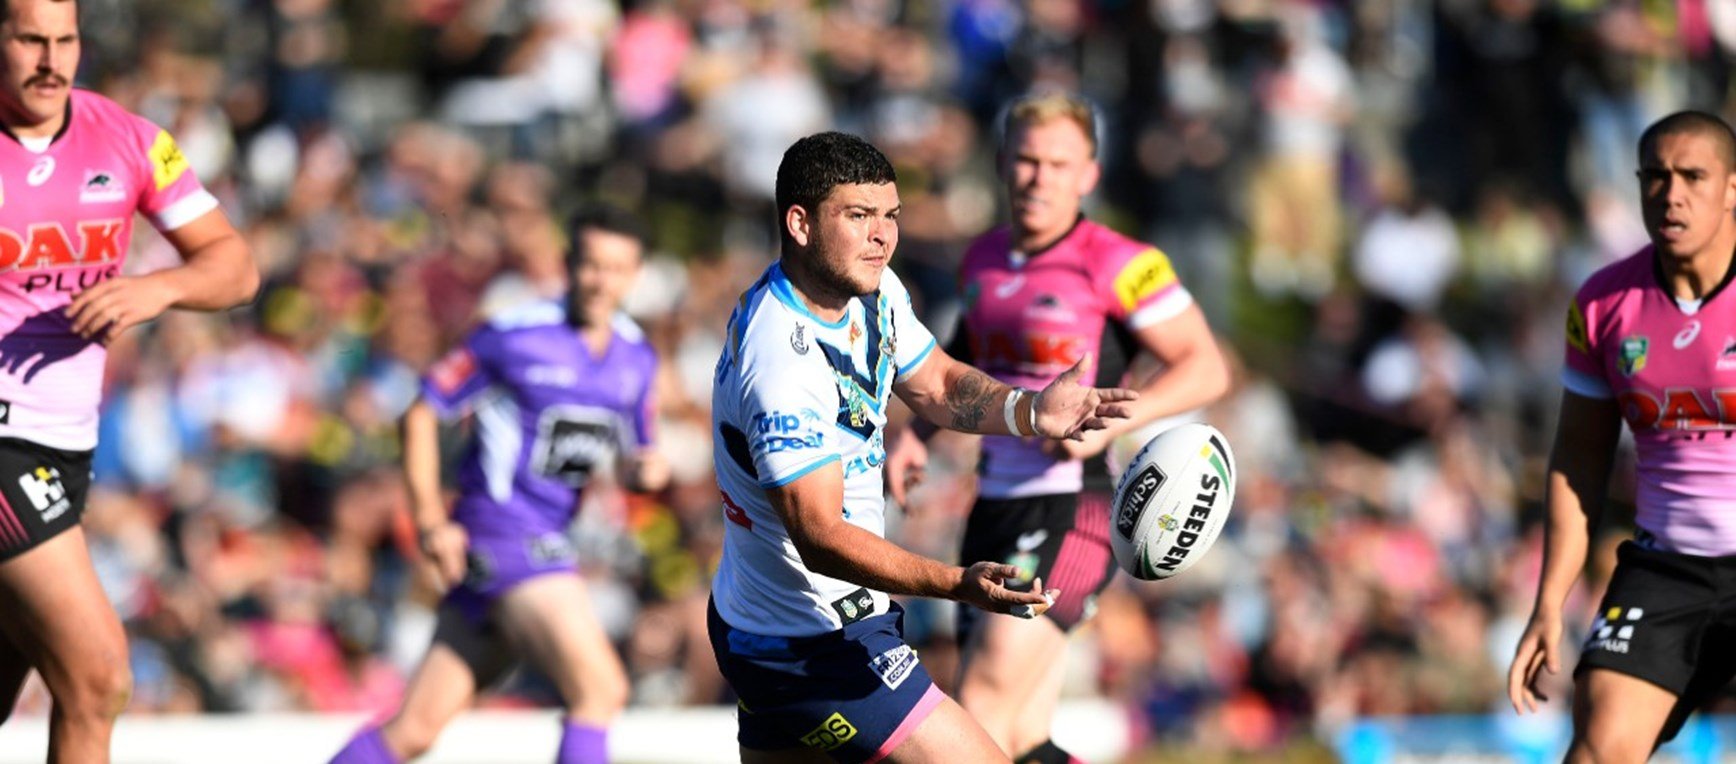 GALLERY: Panthers v Titans